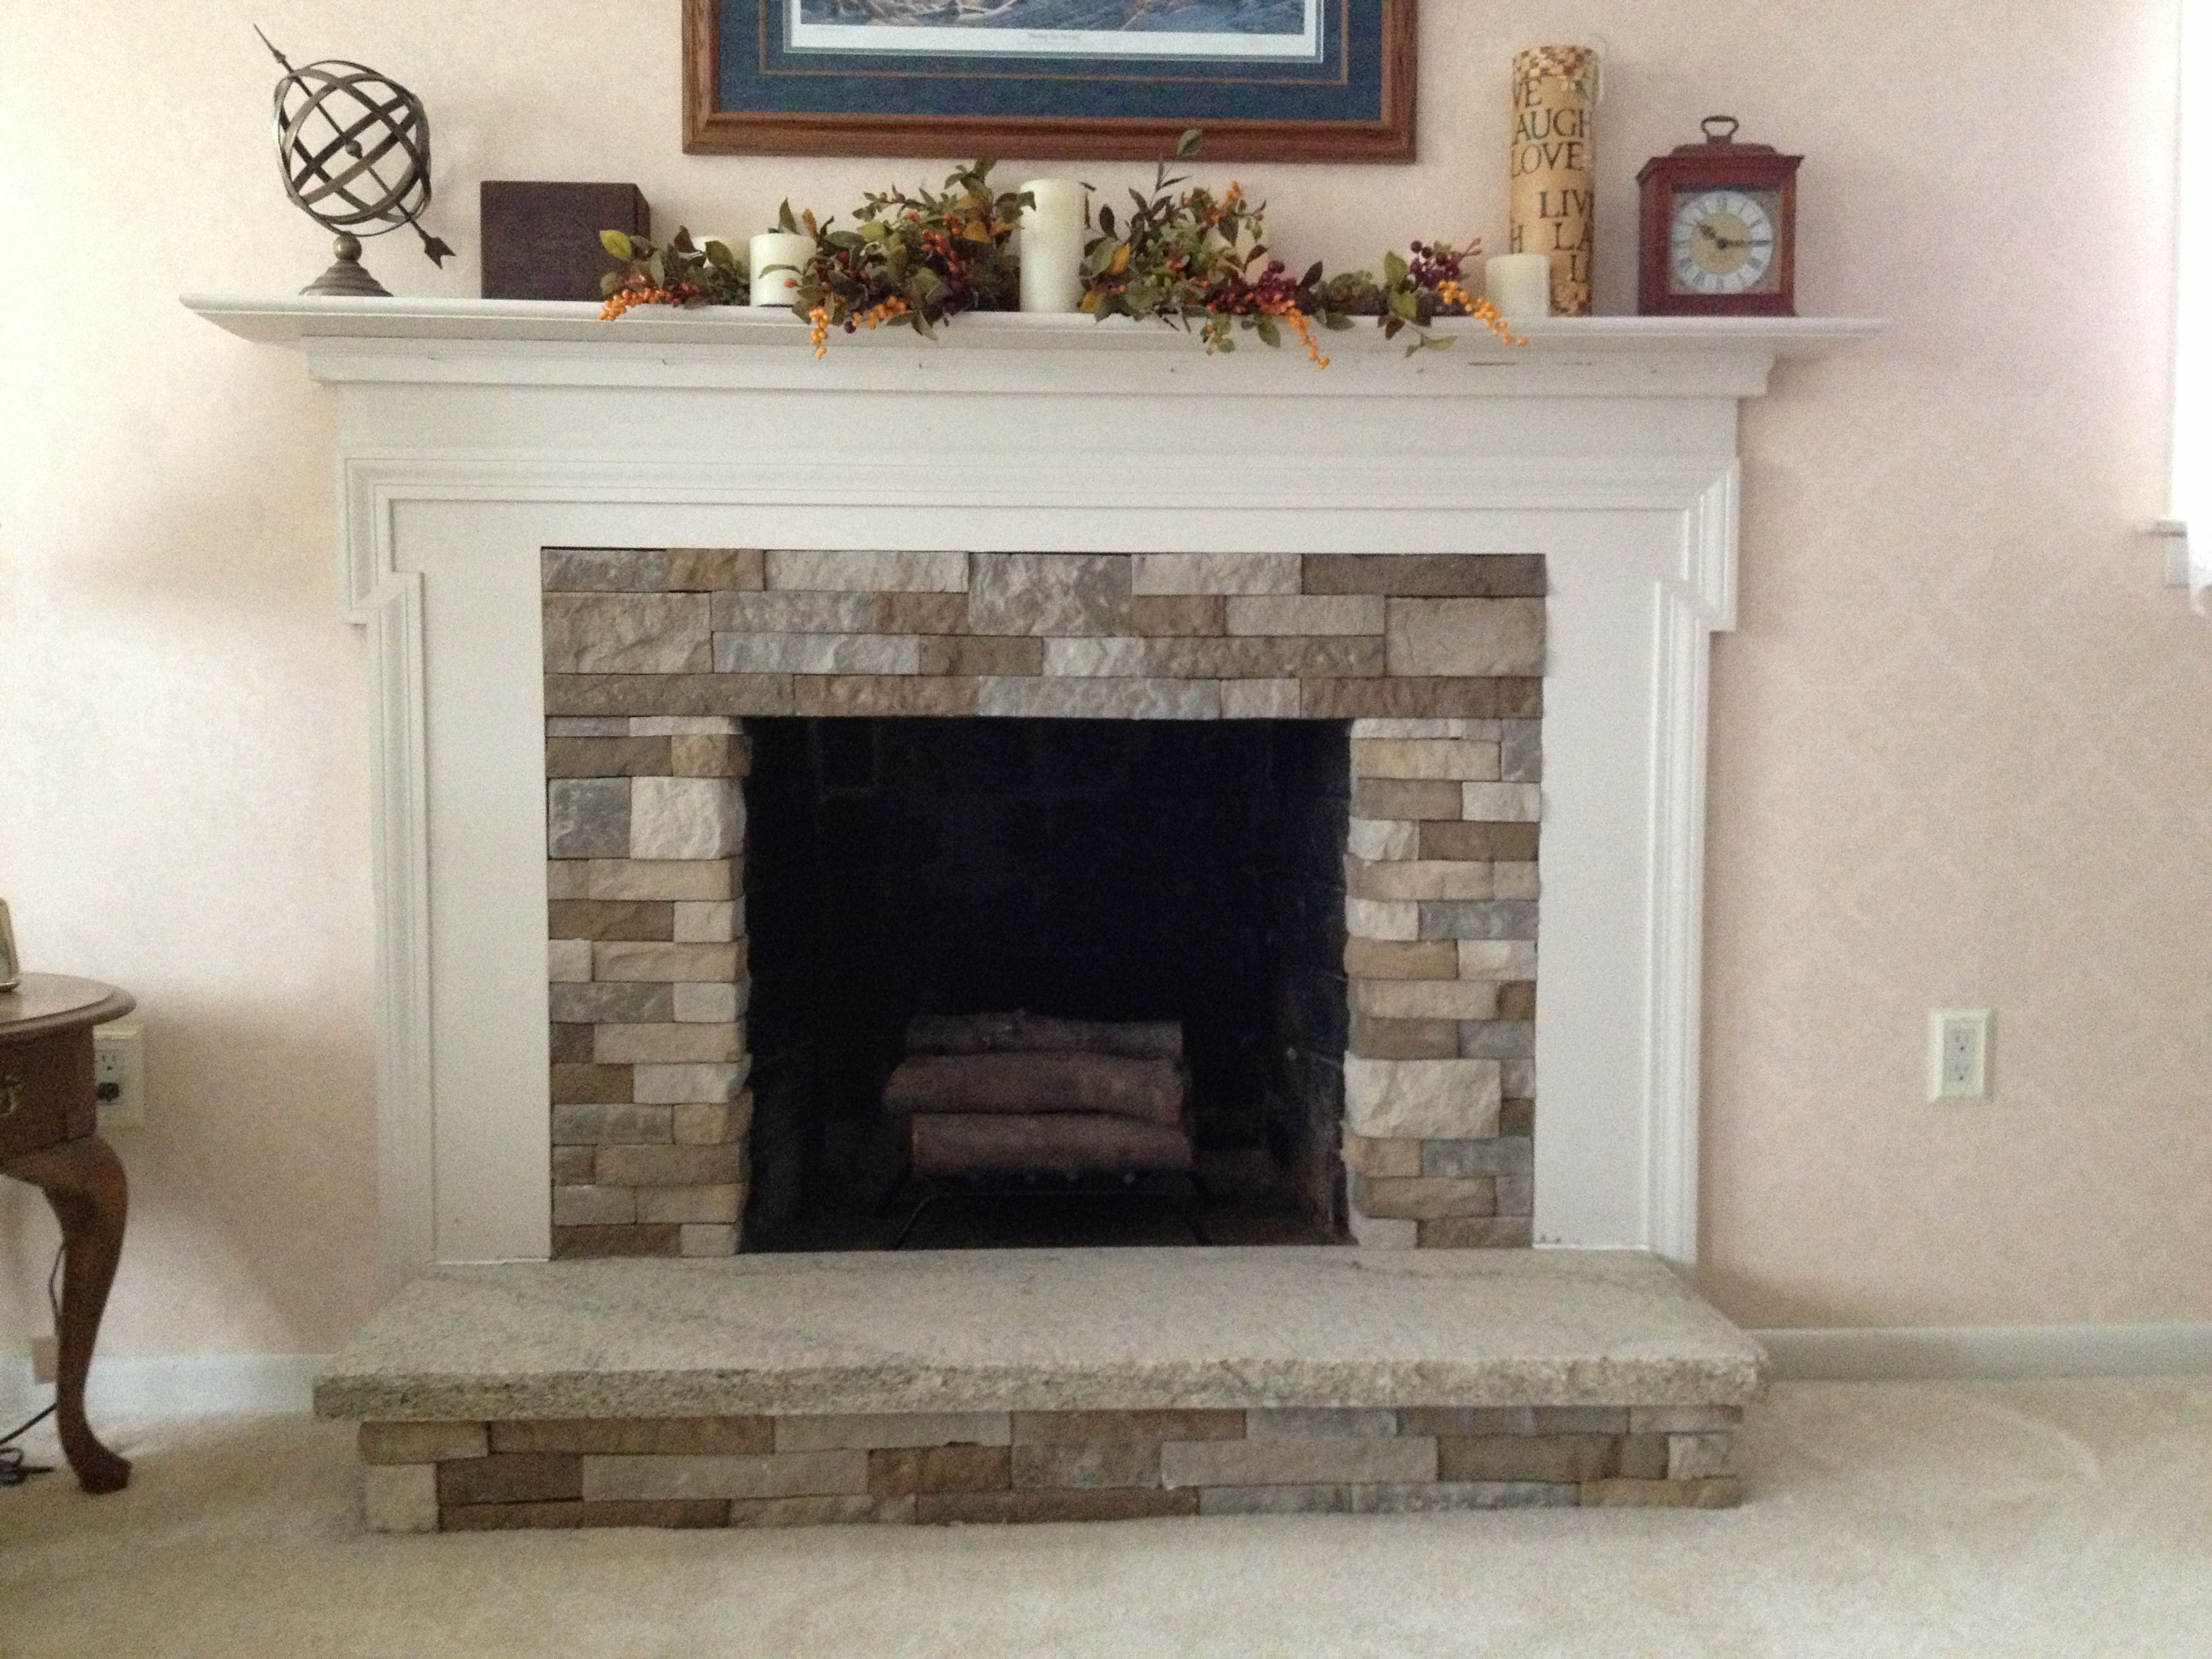 Airstone fireplace trendy airstone fireplace with for Gel fuel fireplaces pros and cons